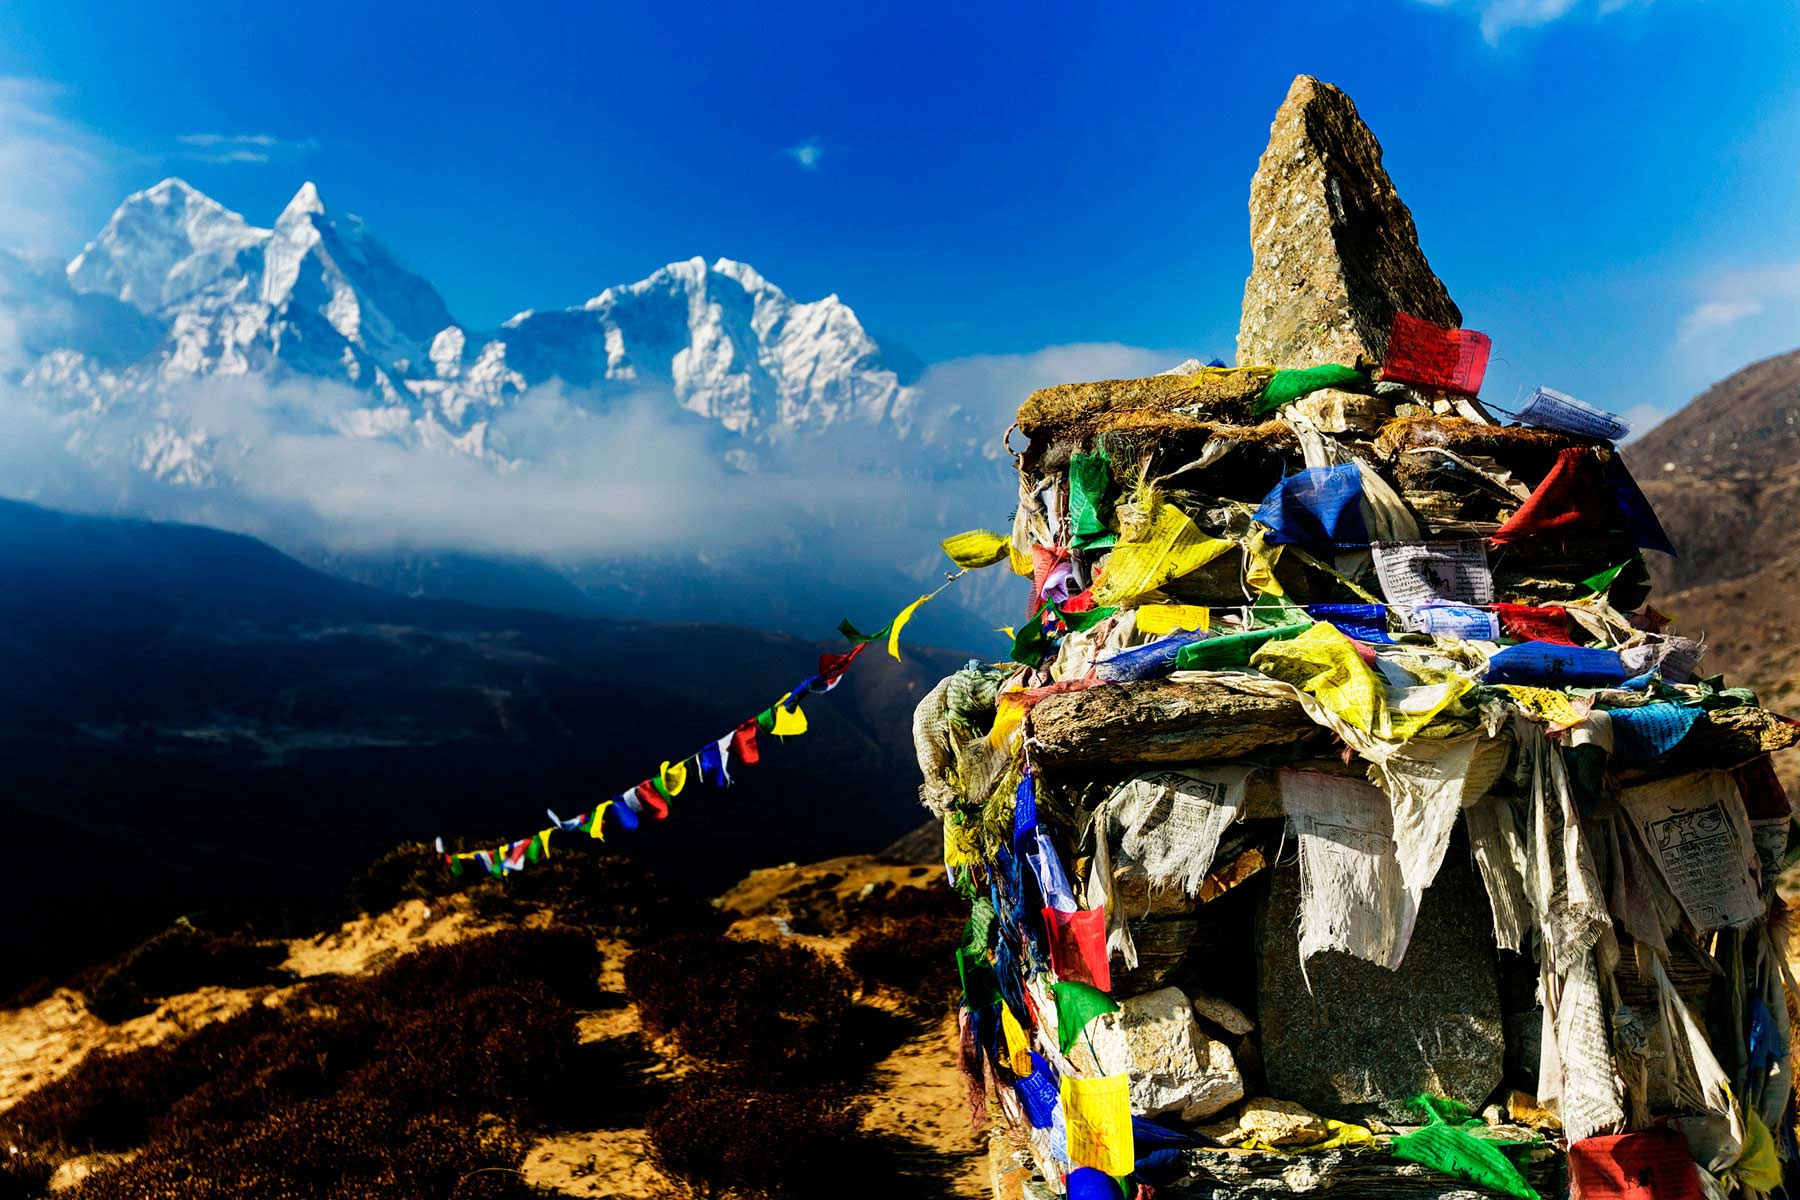 EVEREST BASE CAMP WITH KALAPATHAR TREK - 16 DAYS